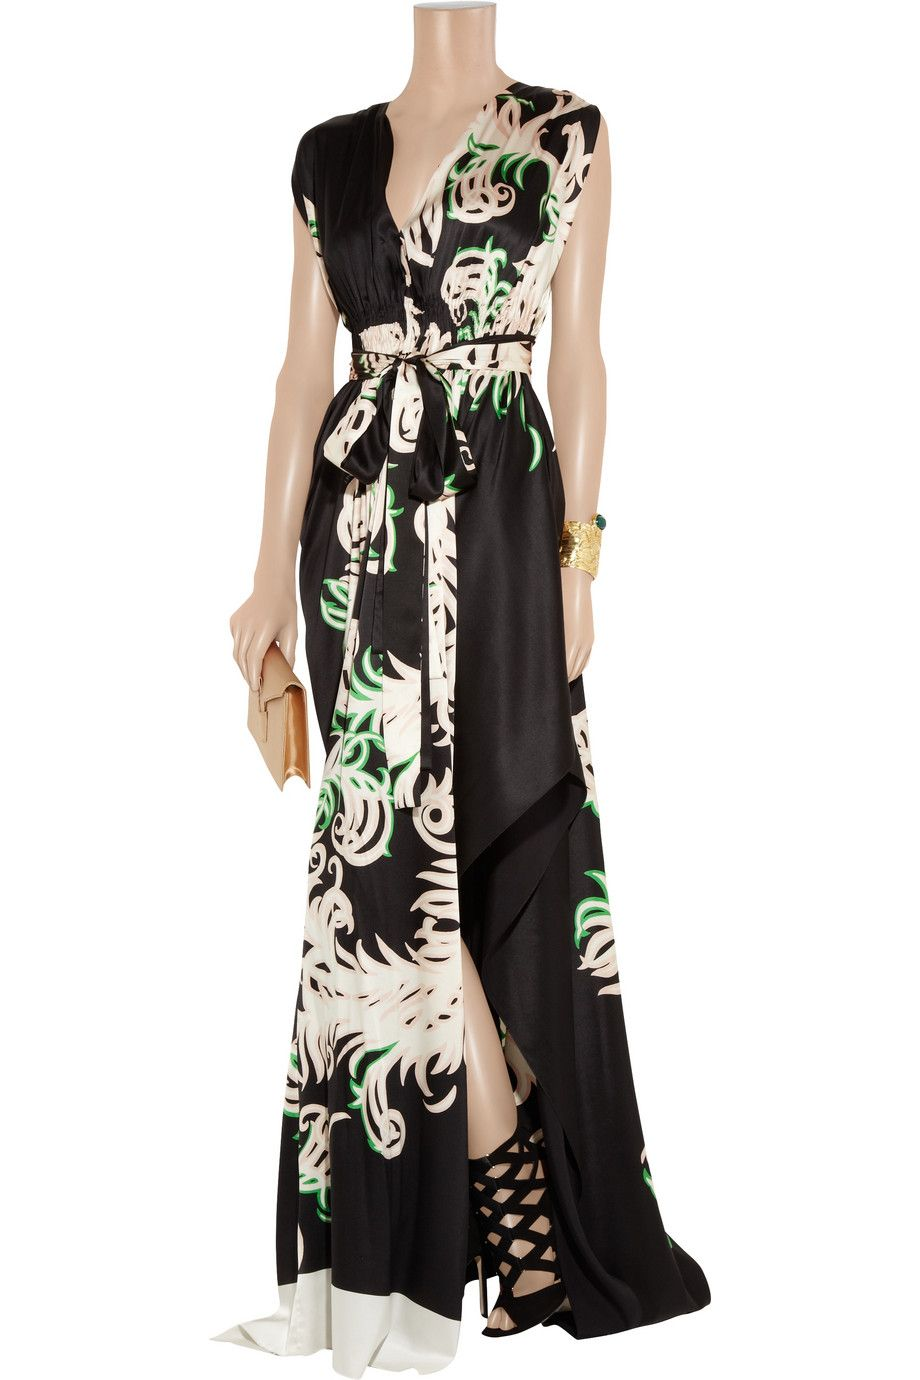 Vionnet Printed stretch-silk satin gown - THE OUTNET $1,614.40